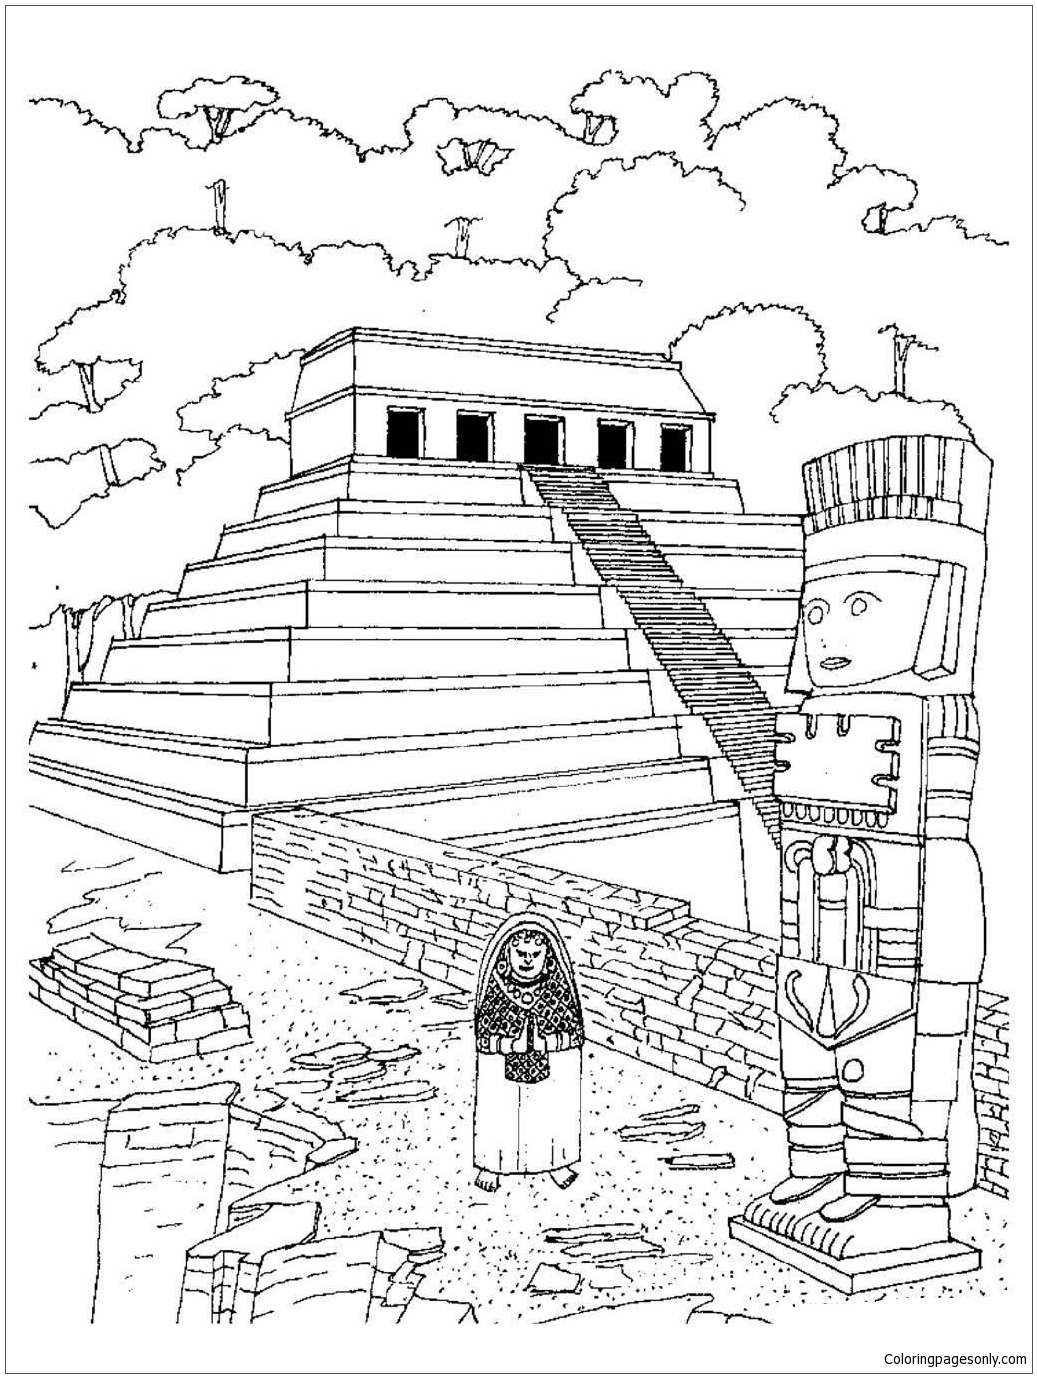 Aztec Temples Coloring Page